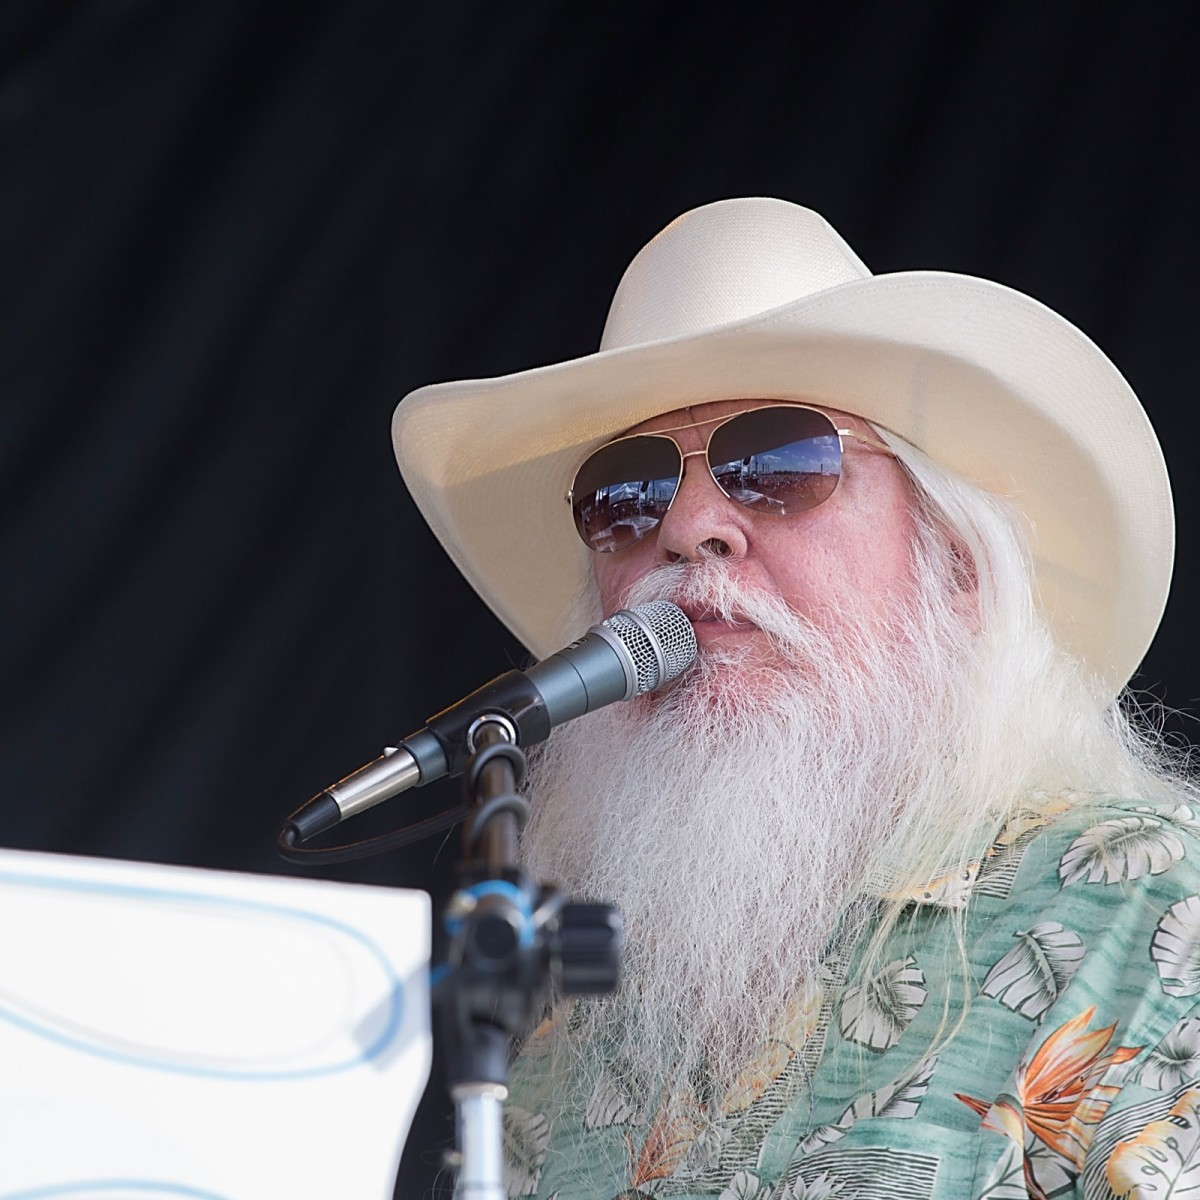 Leon Russell photo via Getty Images